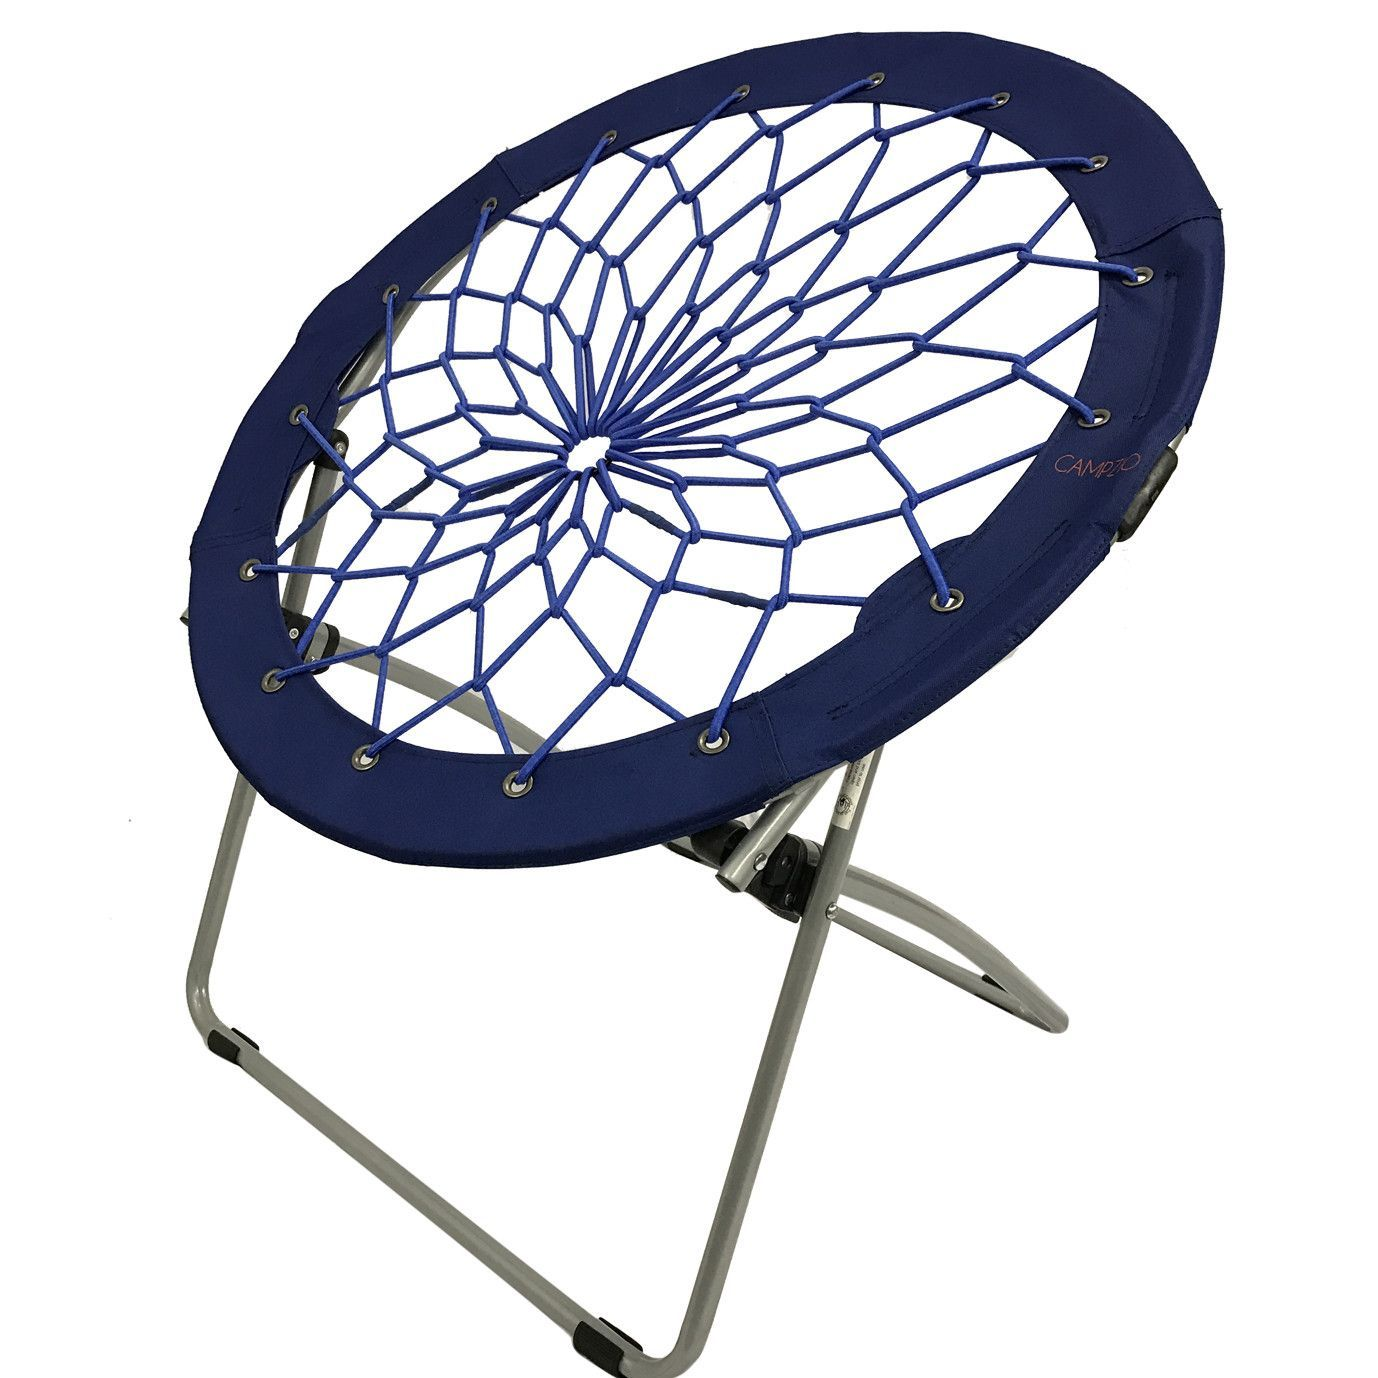 Round Comfy Chair Campzio Bungee Chair Round Folding Comfortable Lightweight